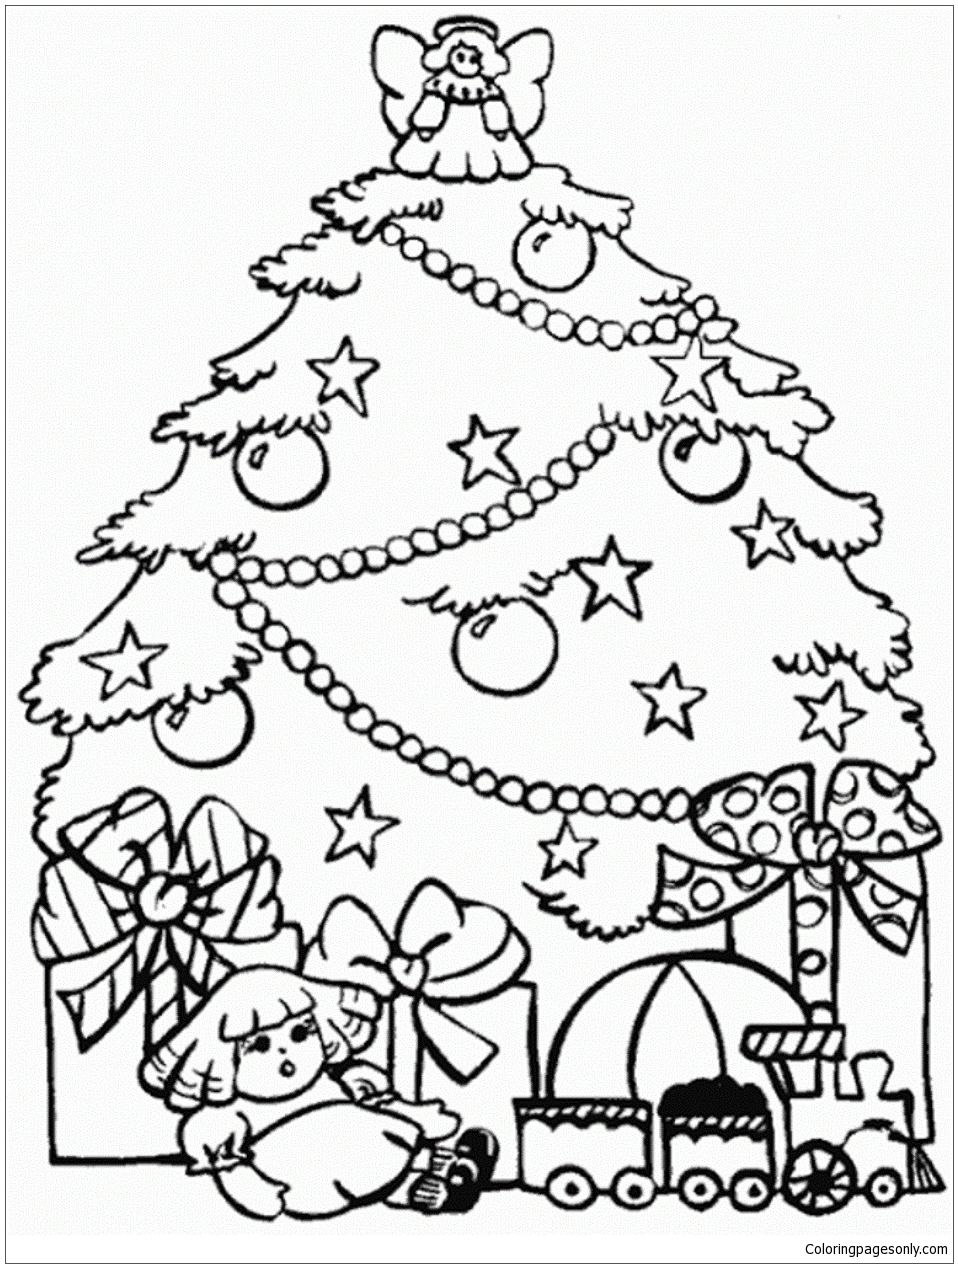 Presents And Christmas Tree Coloring Page - Free Coloring ...